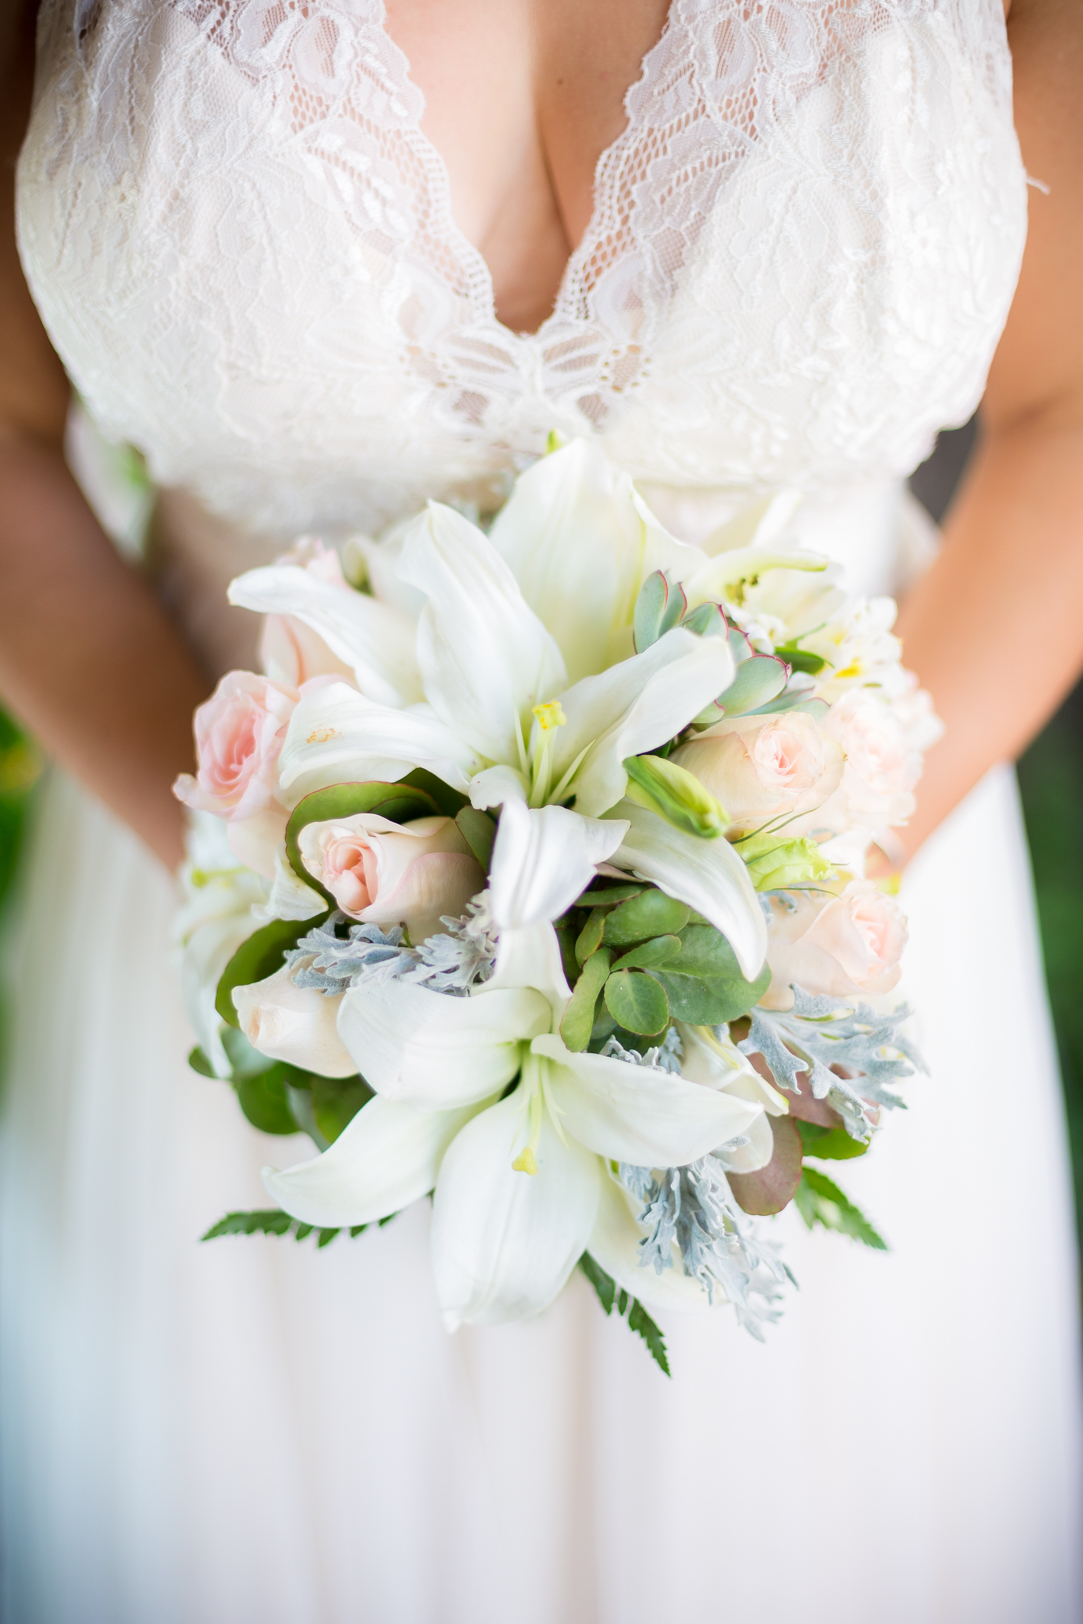 Bridal bouquet at Sunscape Dorado Pacifico Ixtapa destination wedding